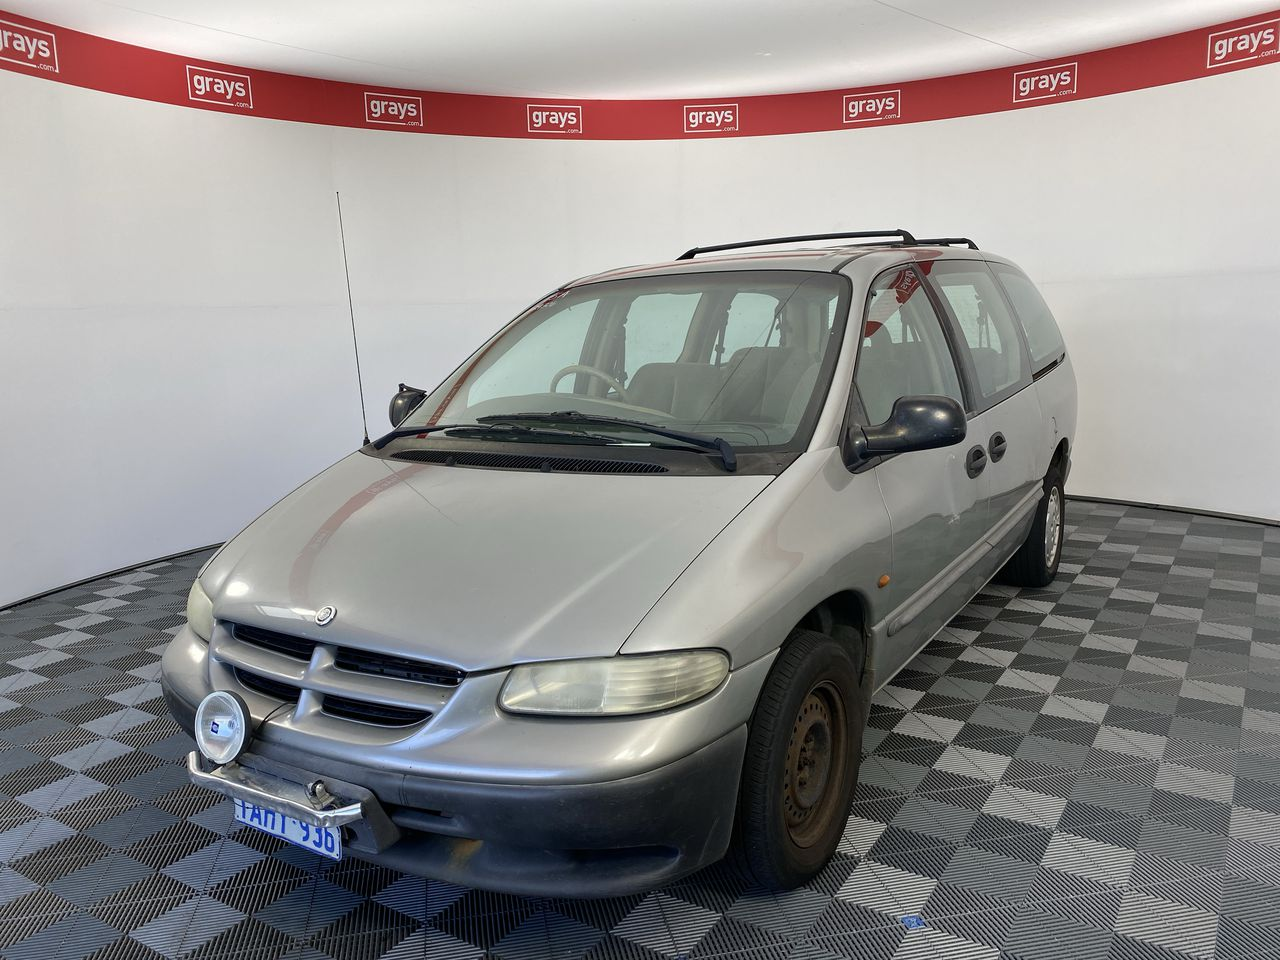 1999 Chrysler Voyager SE Automatic 7 Seats People Mover